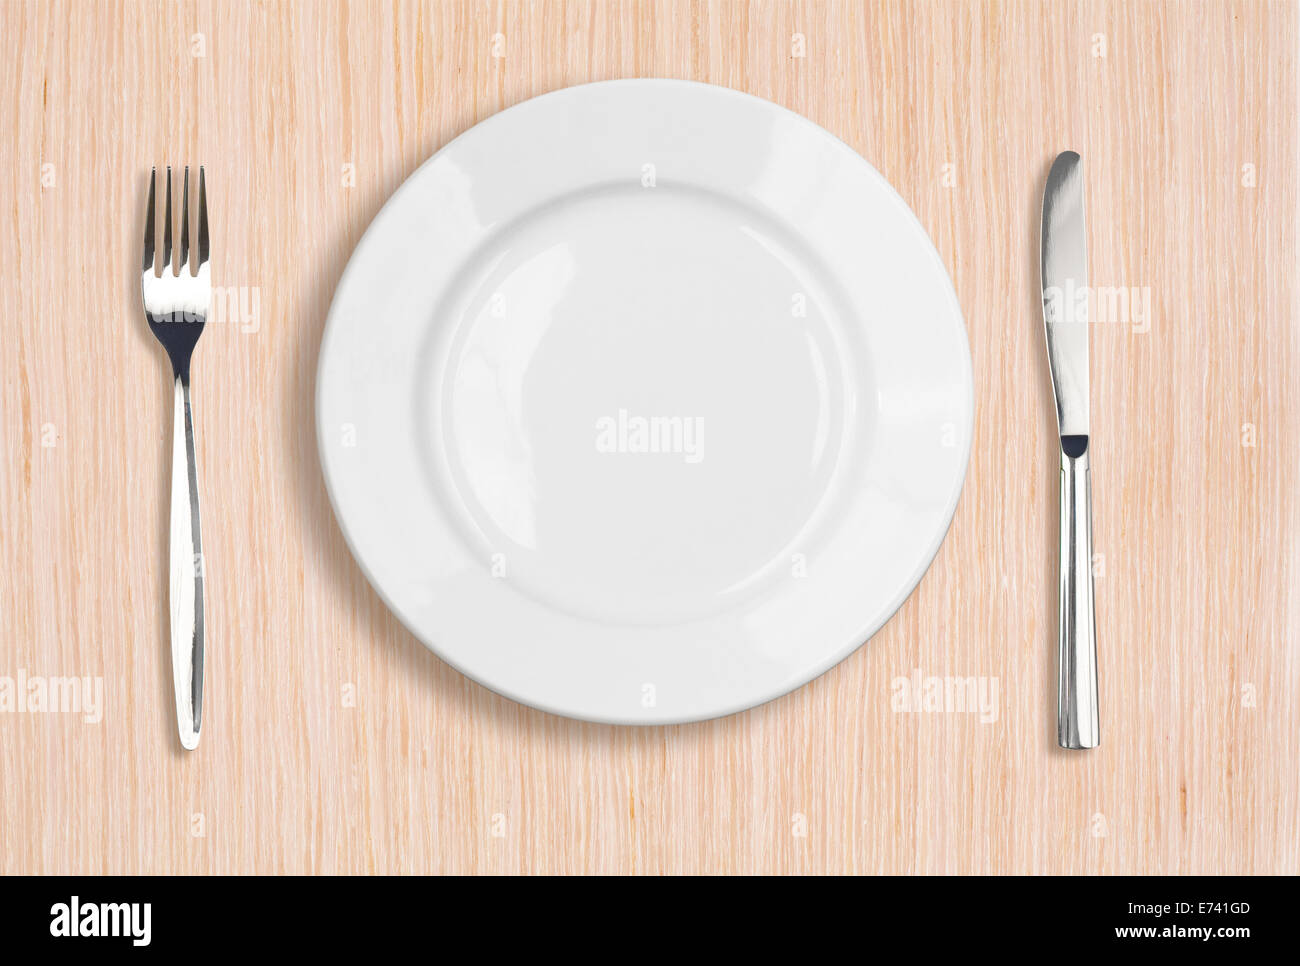 white plate, knife and fork top view on wooden table - Stock Image